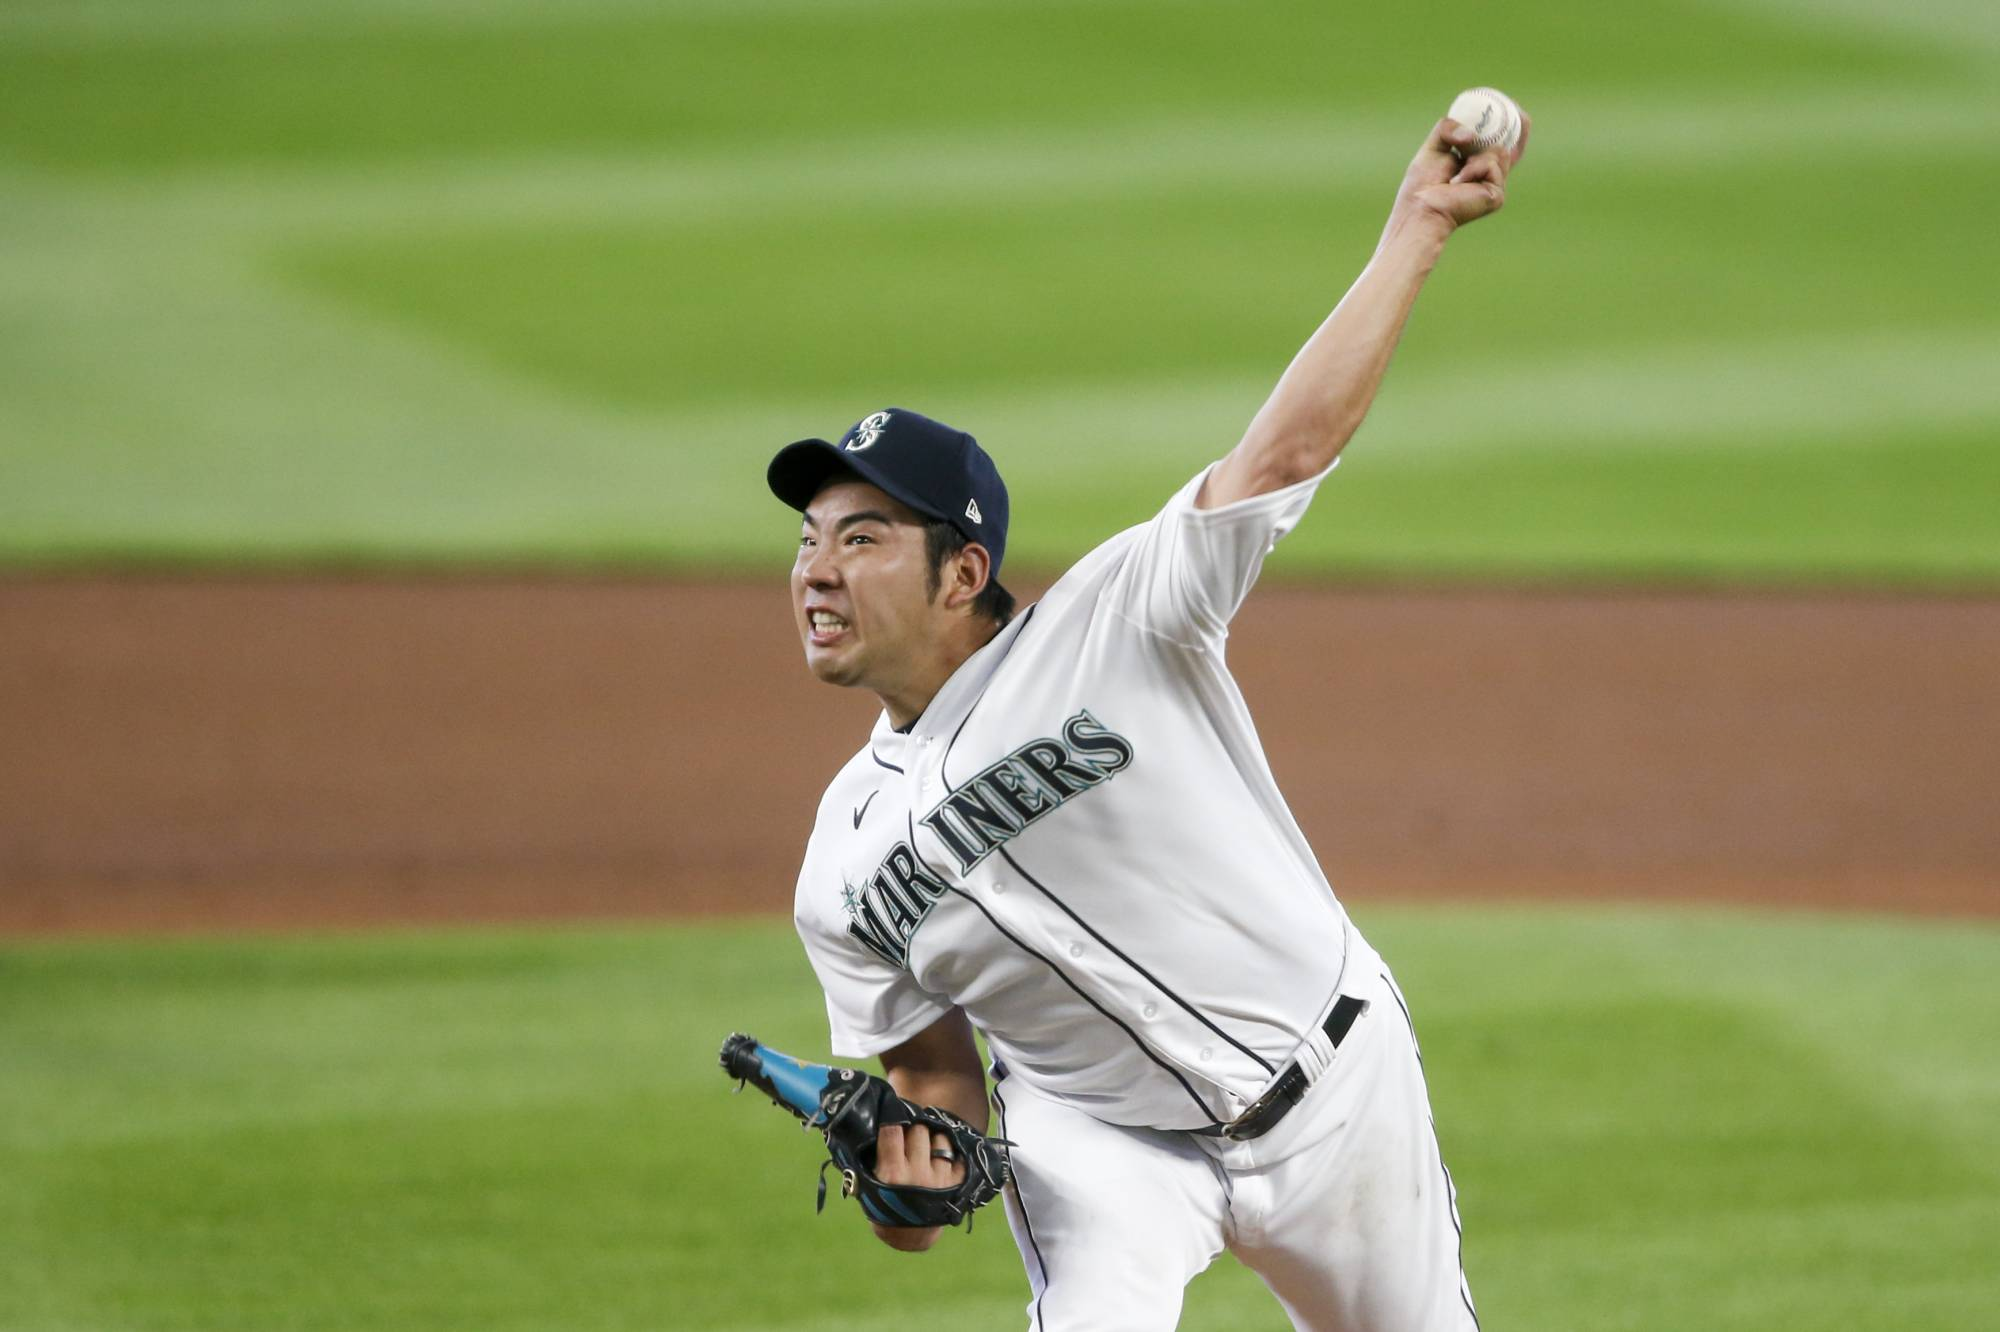 Seattle Mariners starter Yusei Kikuchi throws against the Los Angeles Dodgers during the fifth inning in Seattle on Thursday.  | USA TODAY / VIA REUTERS